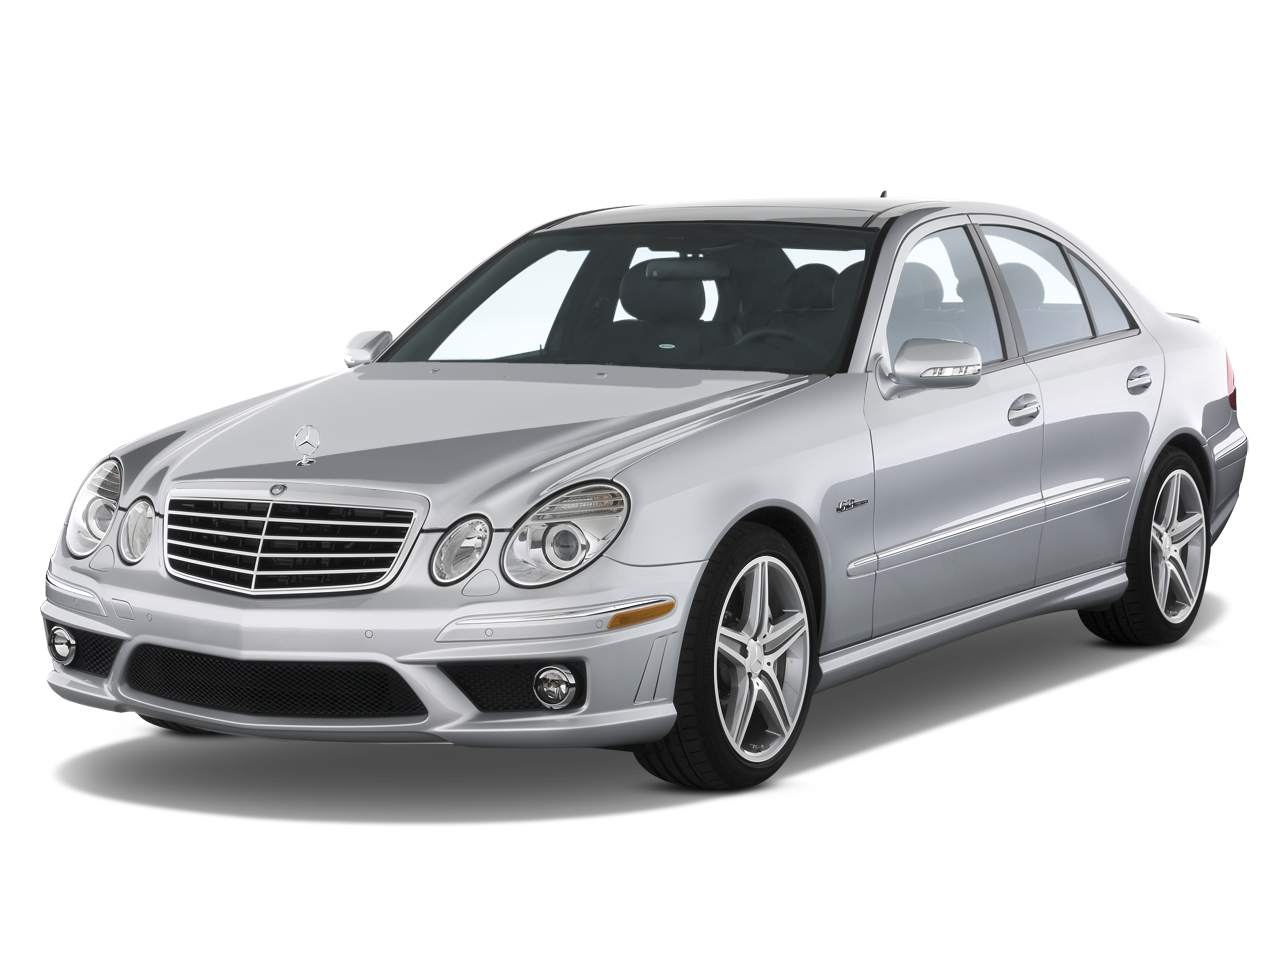 2009 mercedes benz e320 bluetec fuel efficient cars for 2009 s class mercedes benz